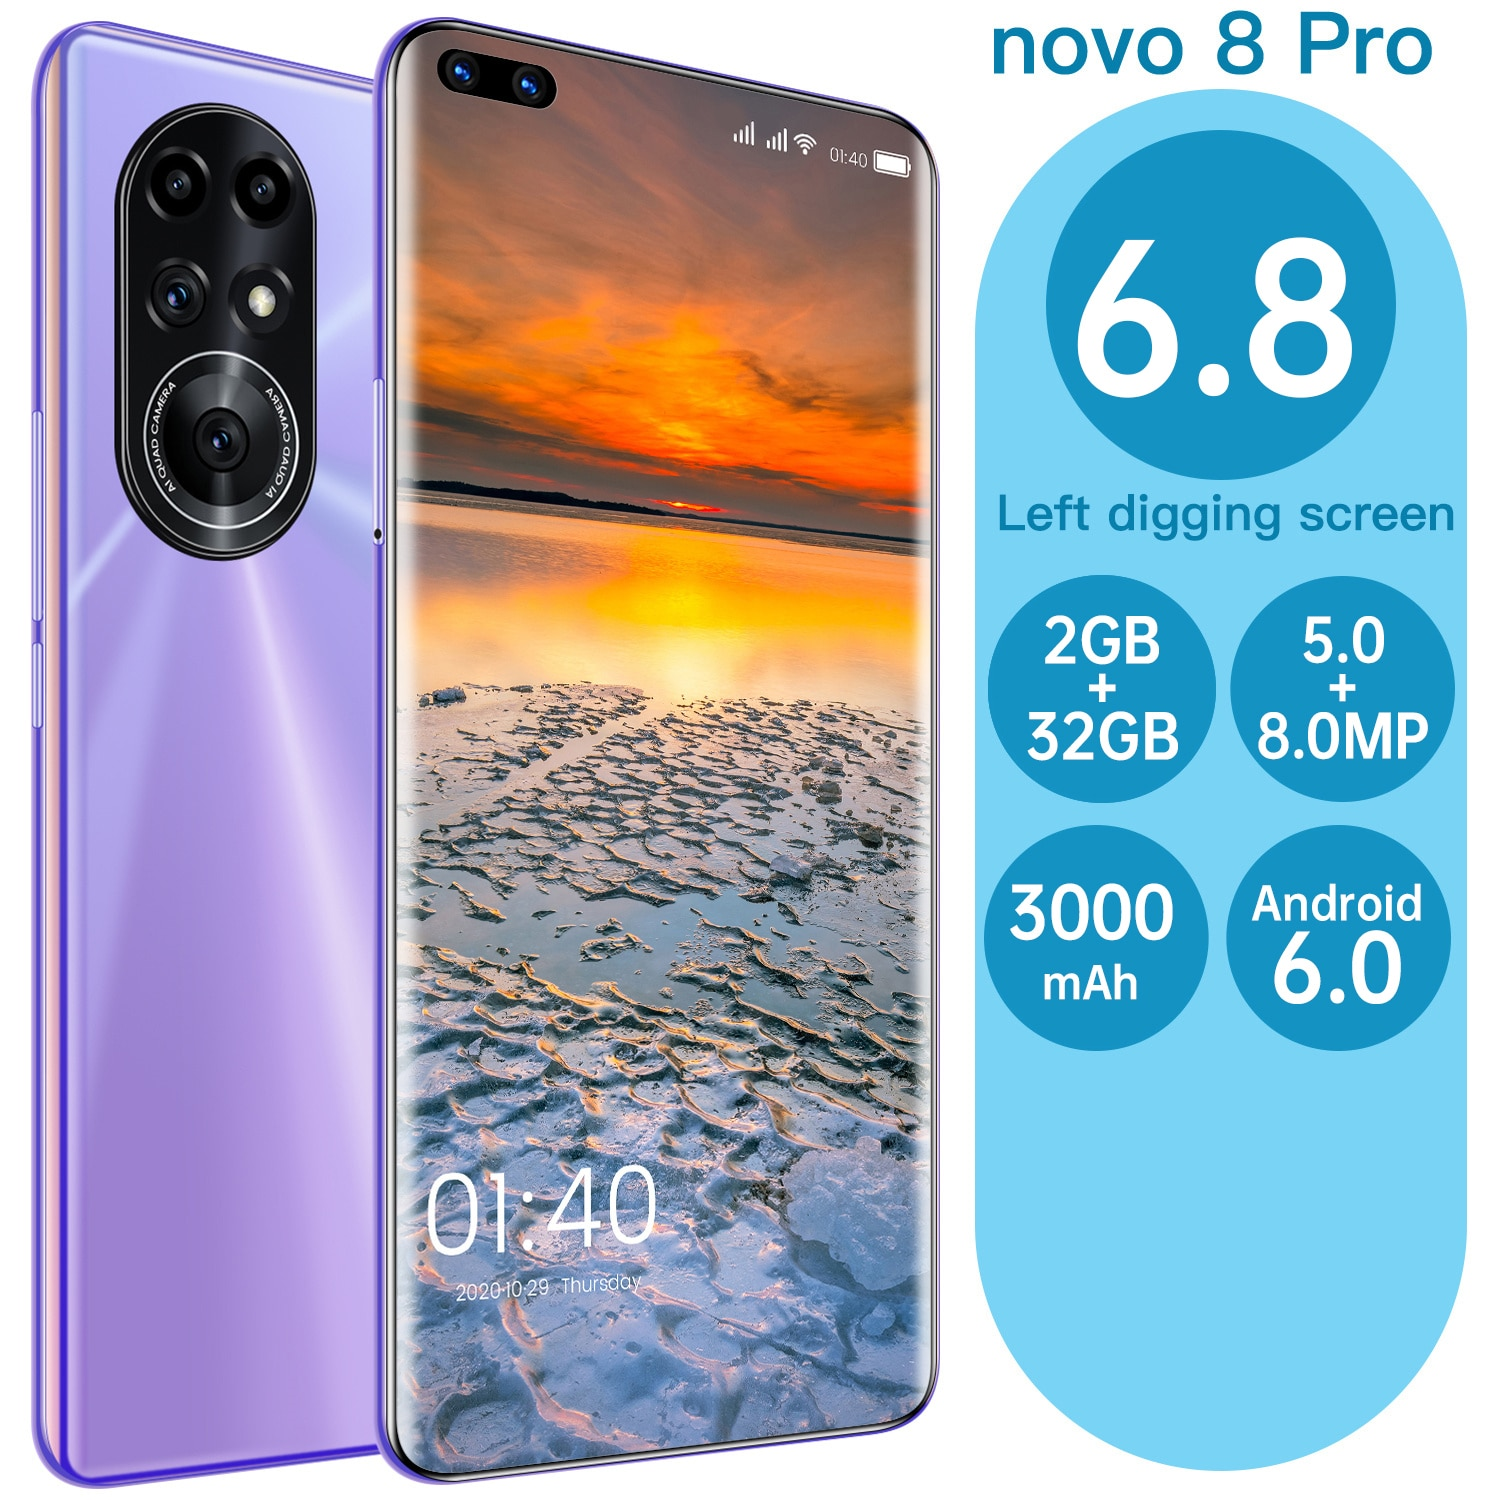 Novo 8 Pro Smratphone Android System 5MP + 8MP HD Camera Mobile Phone 6.8 Inch 2 GB RAM + 32GB ROM Large Memory Cellphone